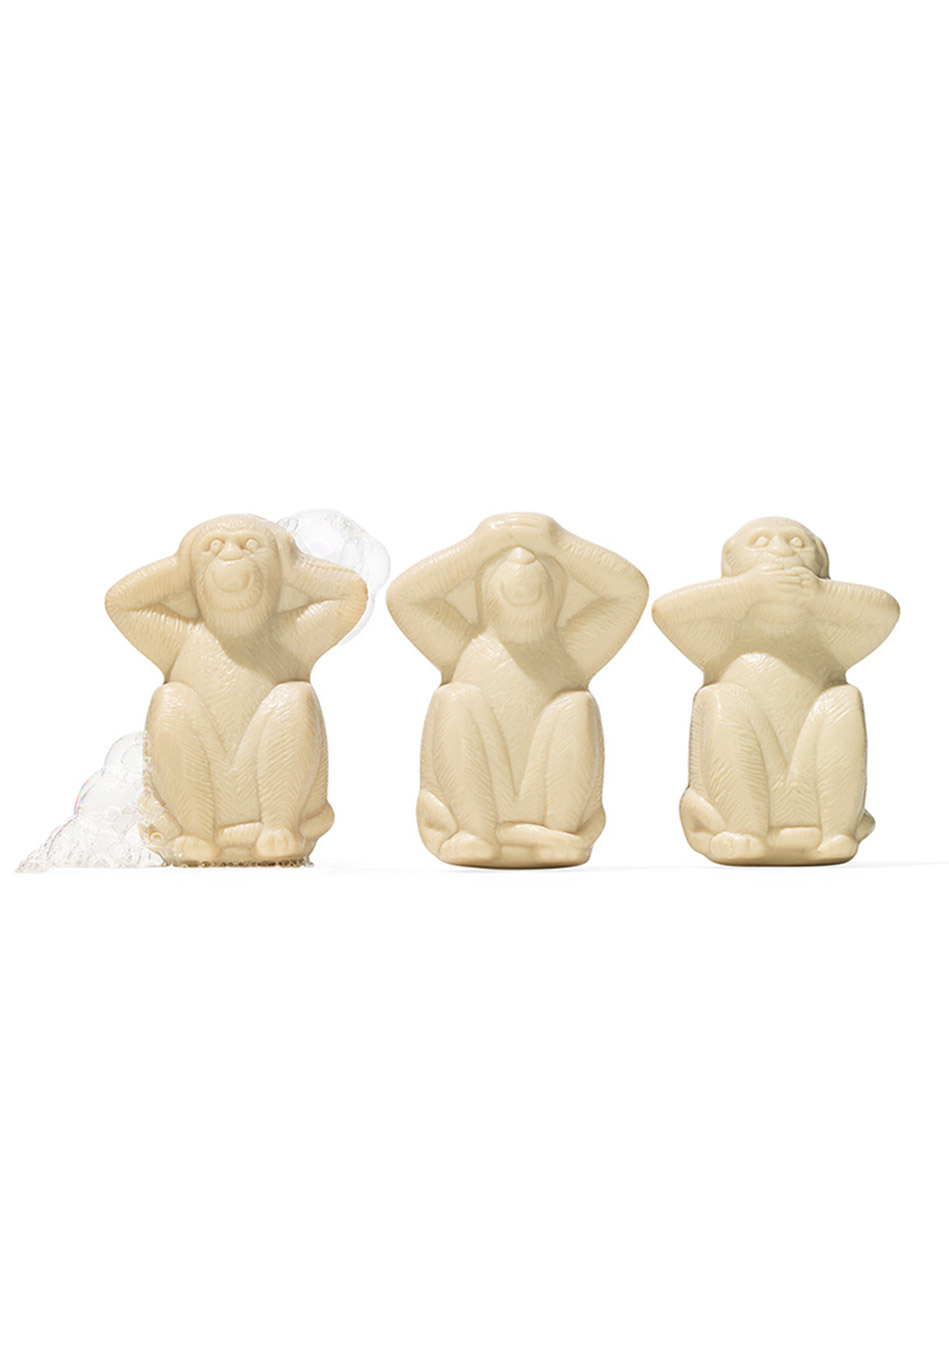 "Three Wise Monkeys ""Trois Singes"" Soaps"